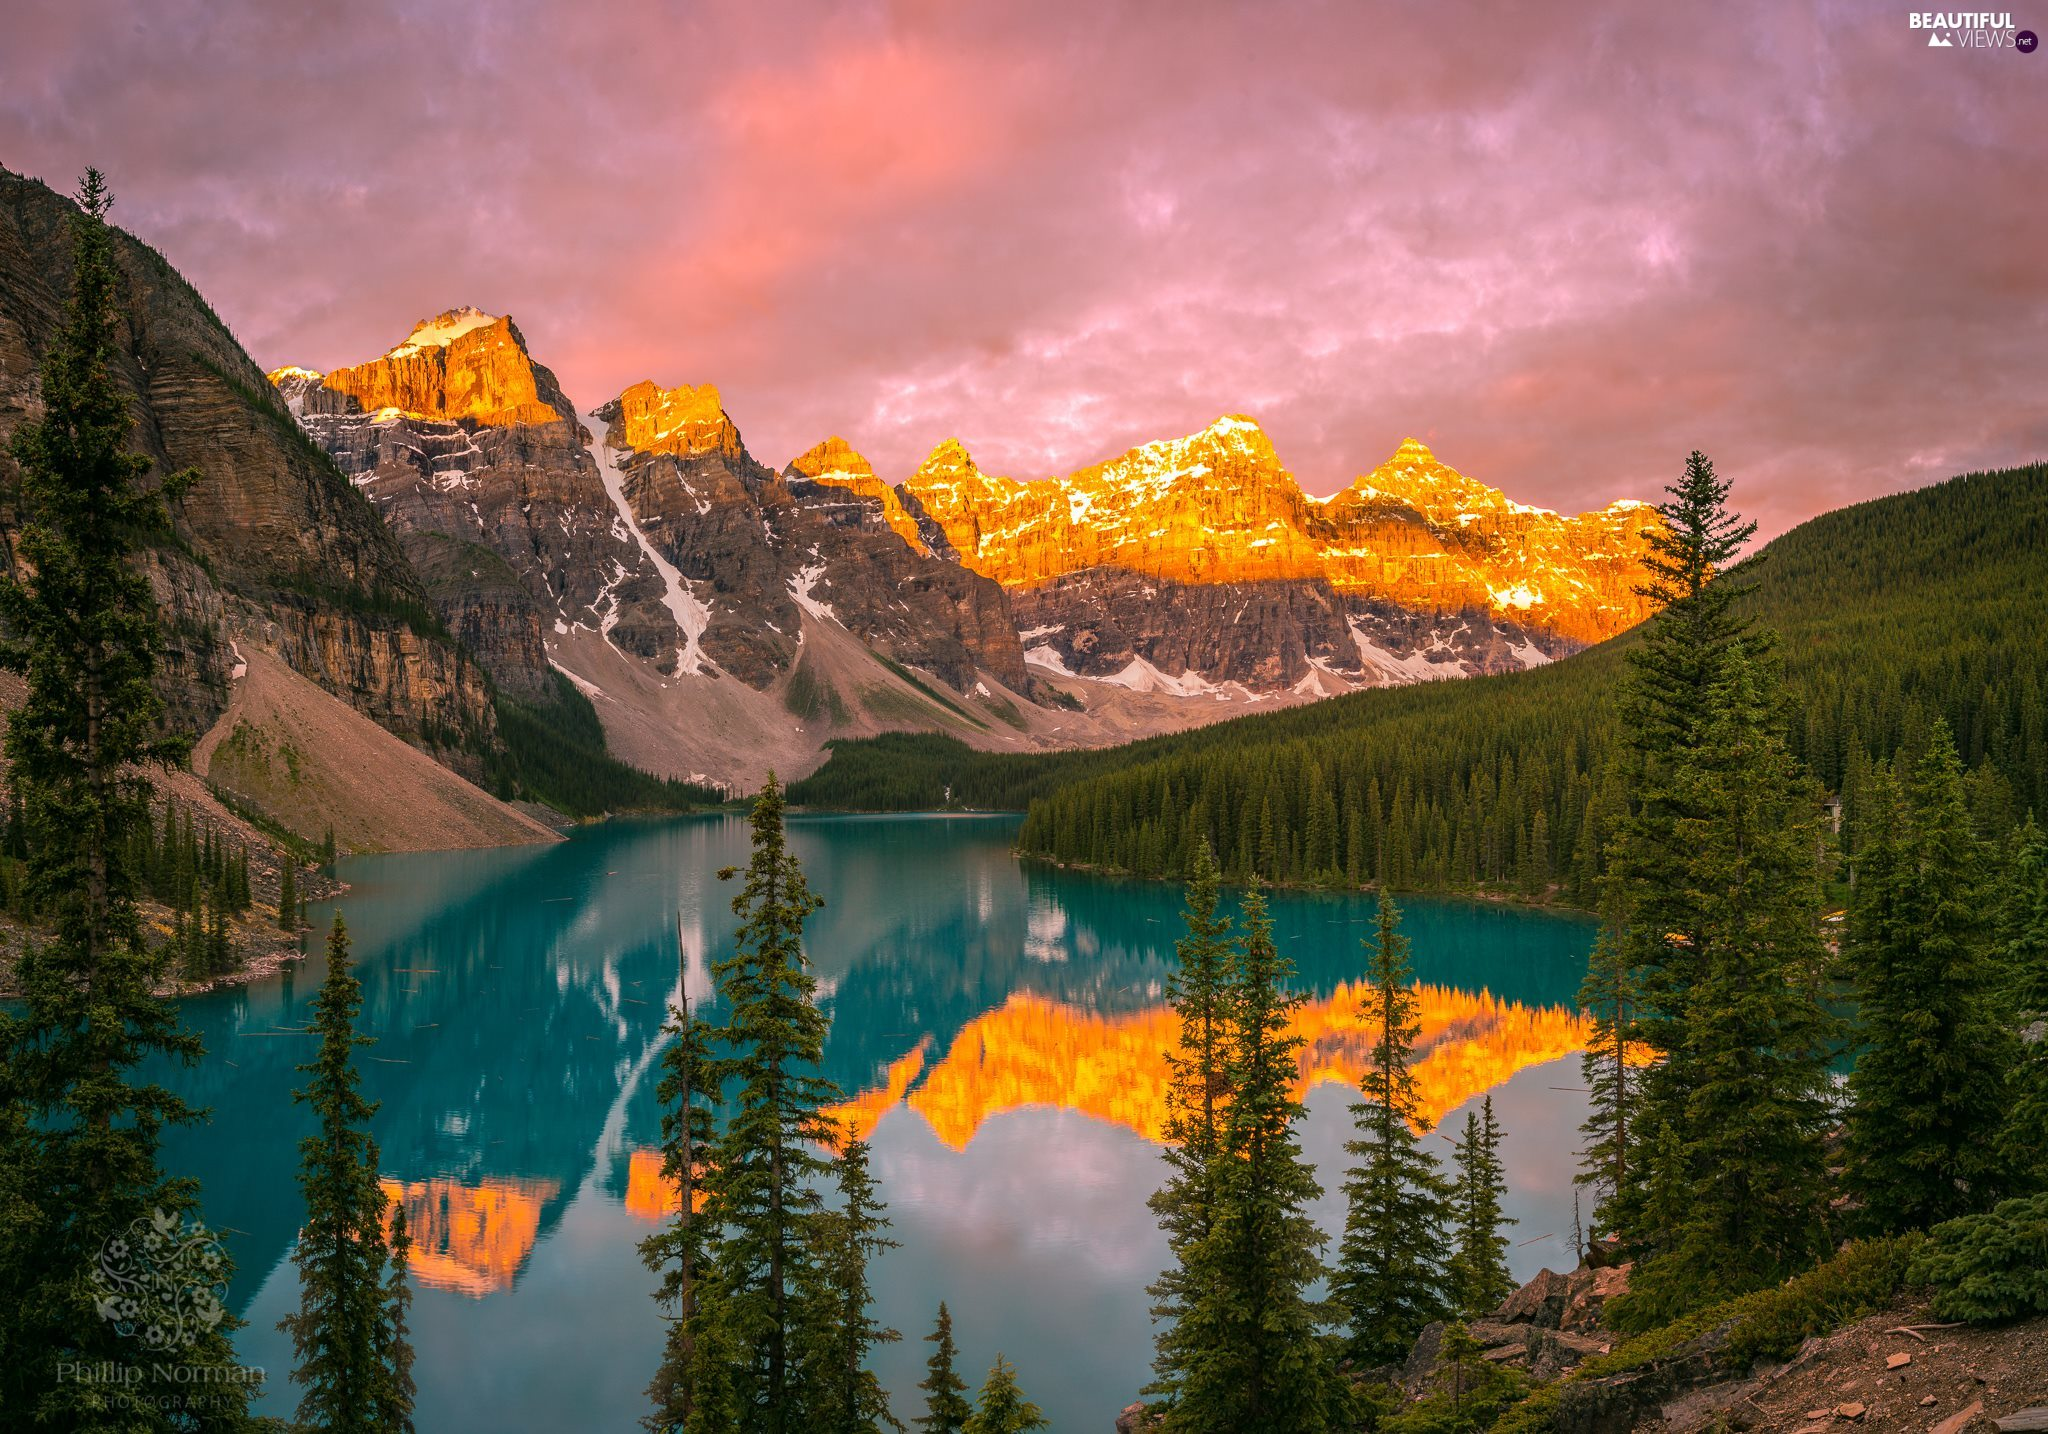 Lake Moraine, woods, trees, clouds, viewes, Canada, Banff National Park, reflection, Mountains